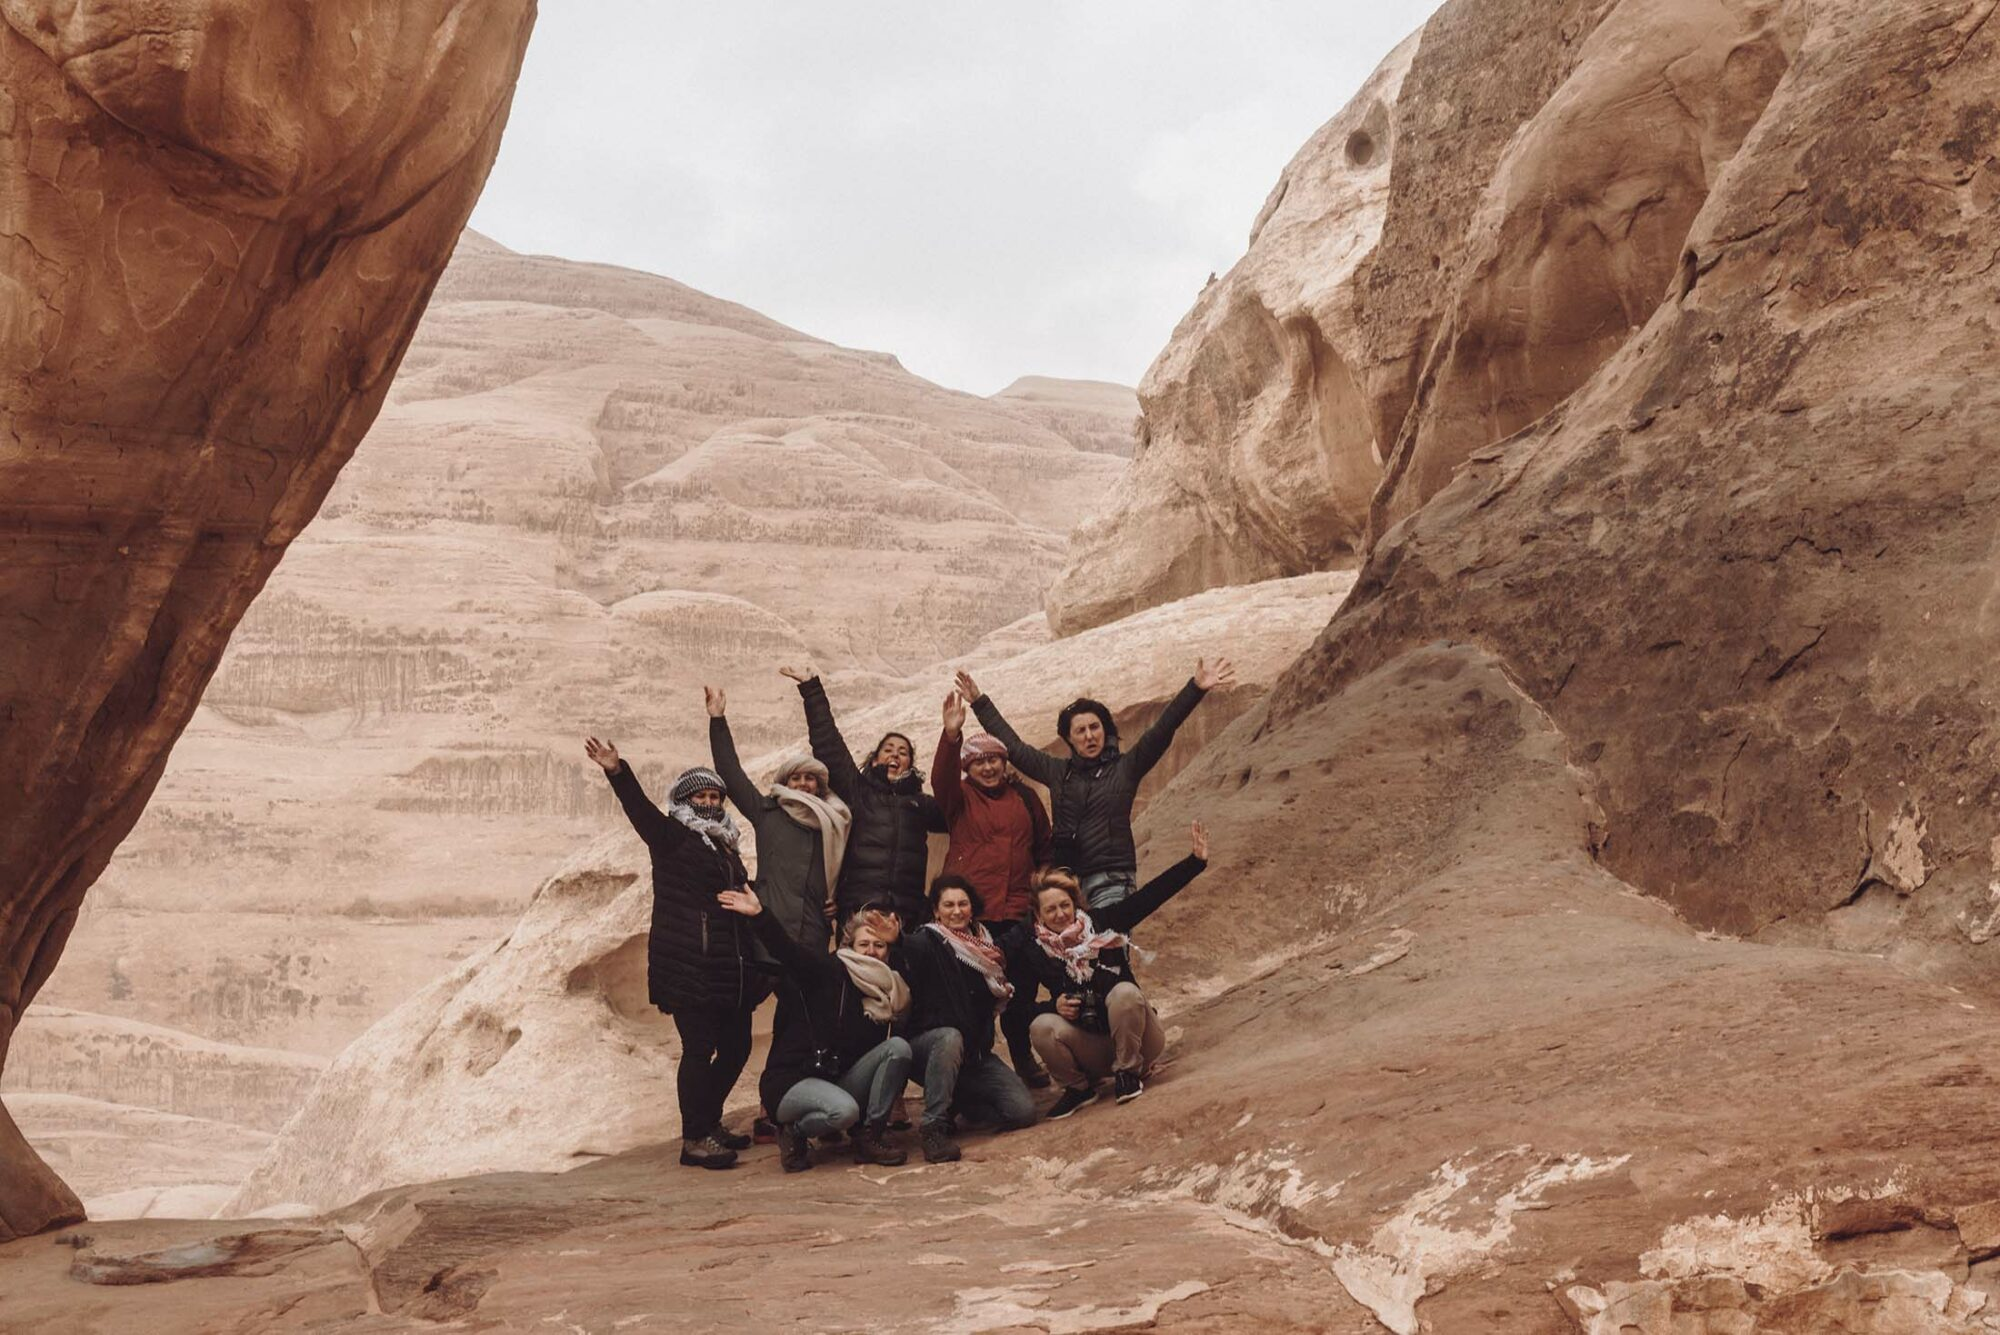 Fotoreis Jordanie | ROCKY ROADS TRAVEL